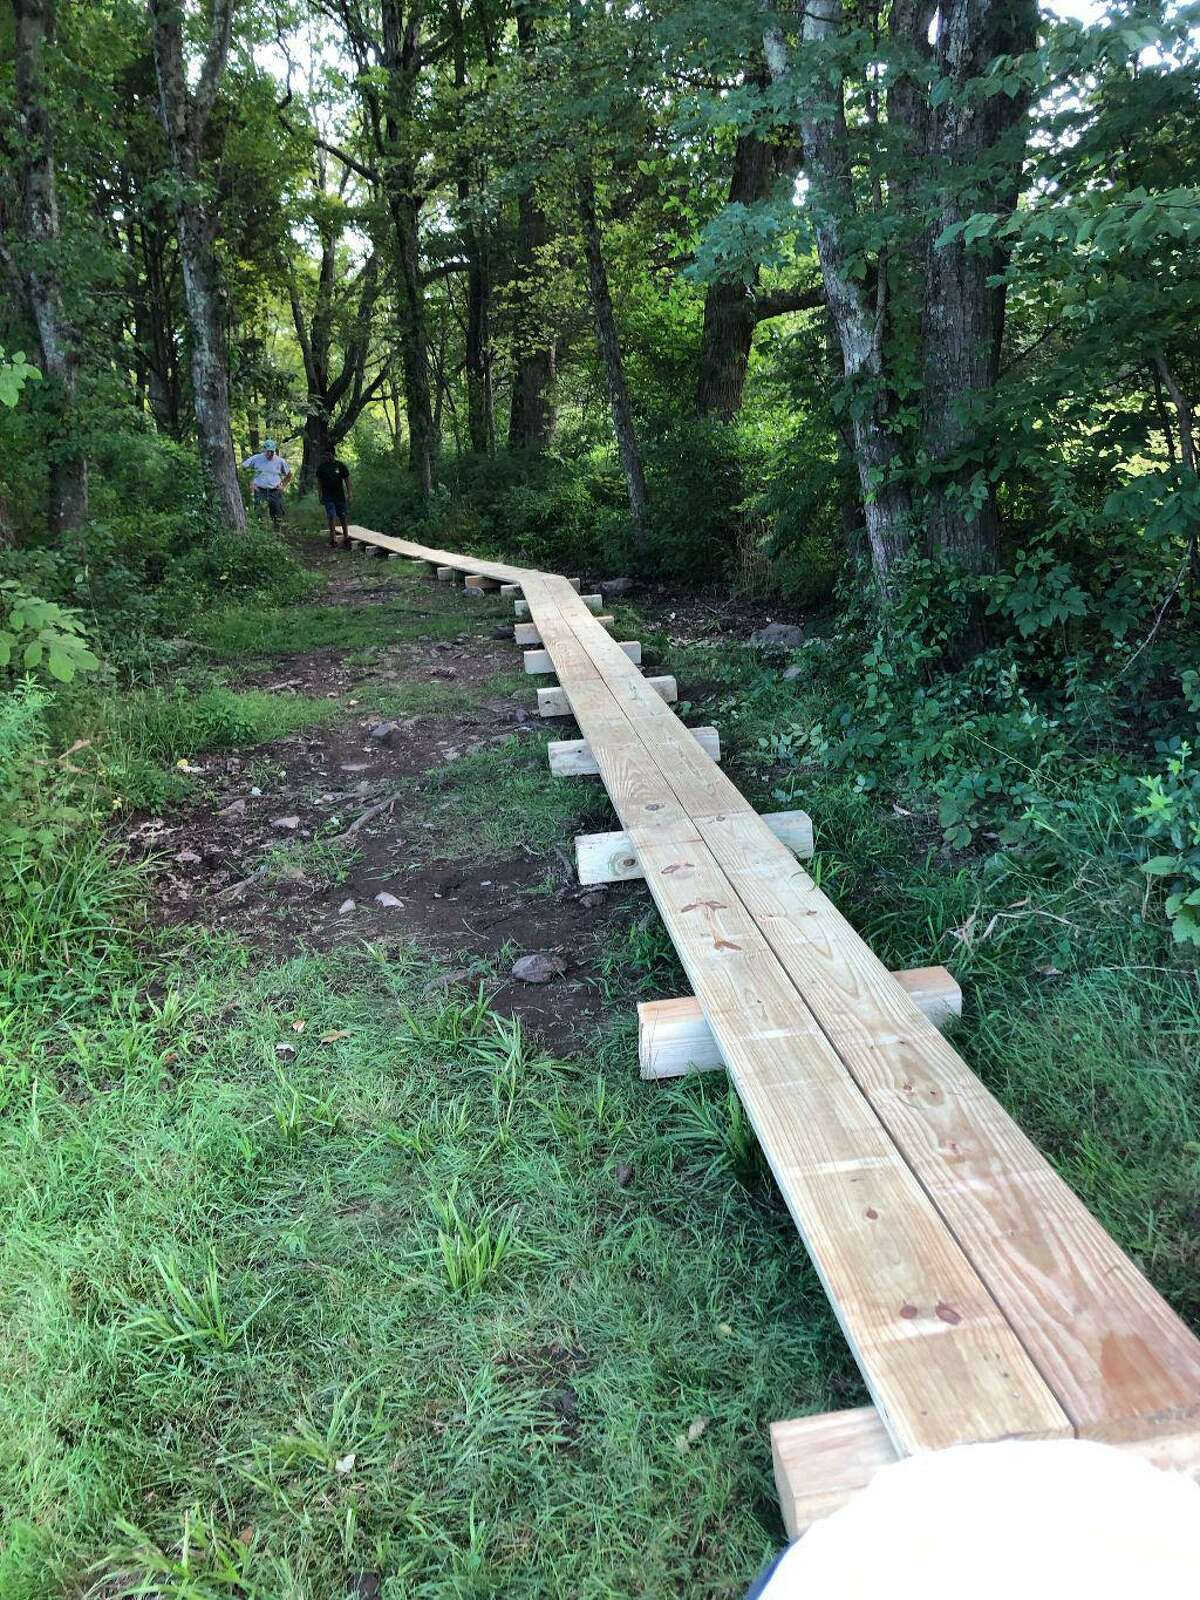 The walkway completed at Randall's Farm Nature Preserve in Easton by Boy Scout Sam Sciaudone.